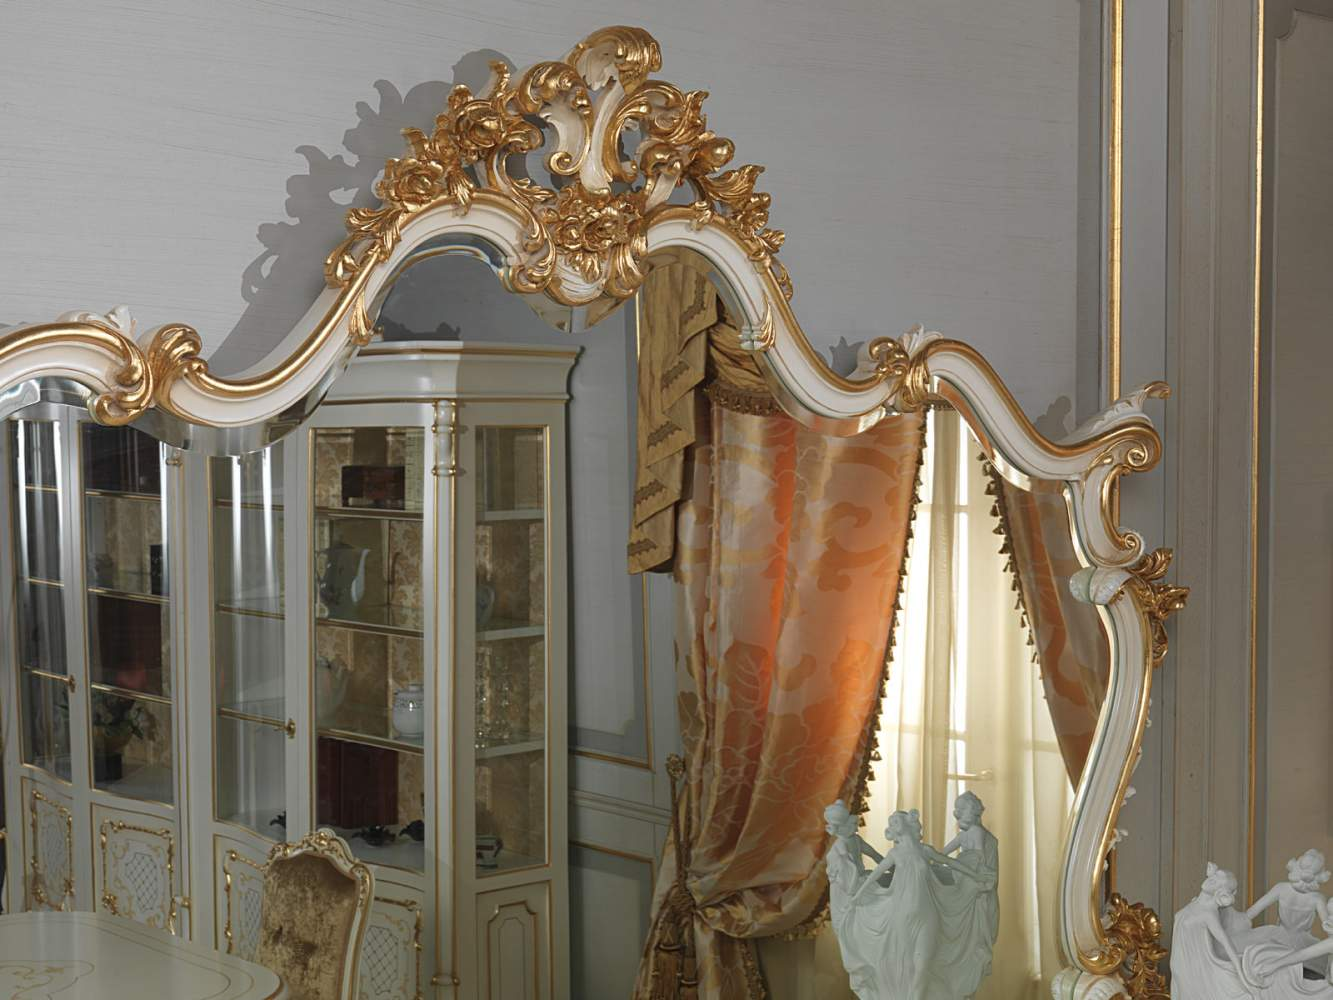 Mirror in Louis XV style